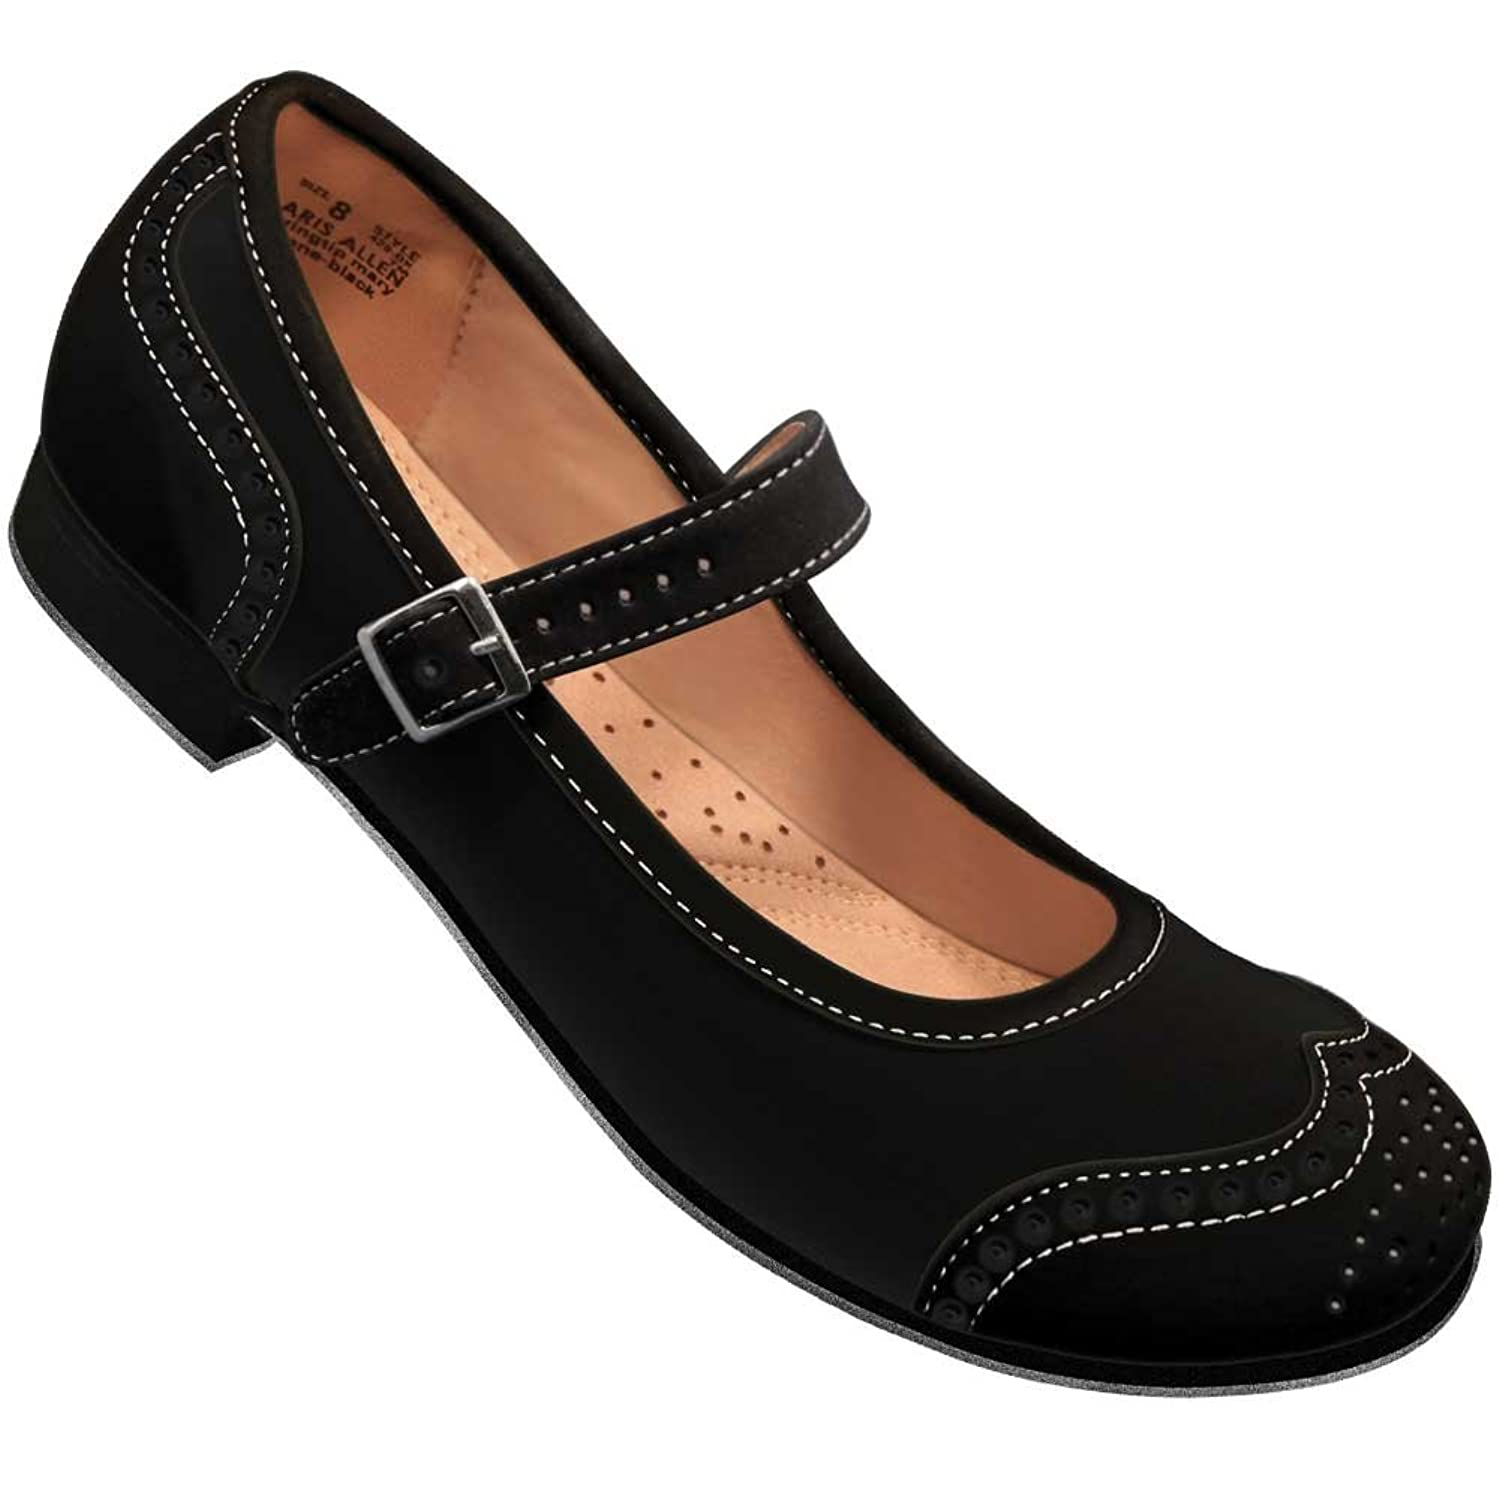 1950s Style Shoes Aris Allen Black Snub Toe Mary Jane Wingtips $48.95 AT vintagedancer.com